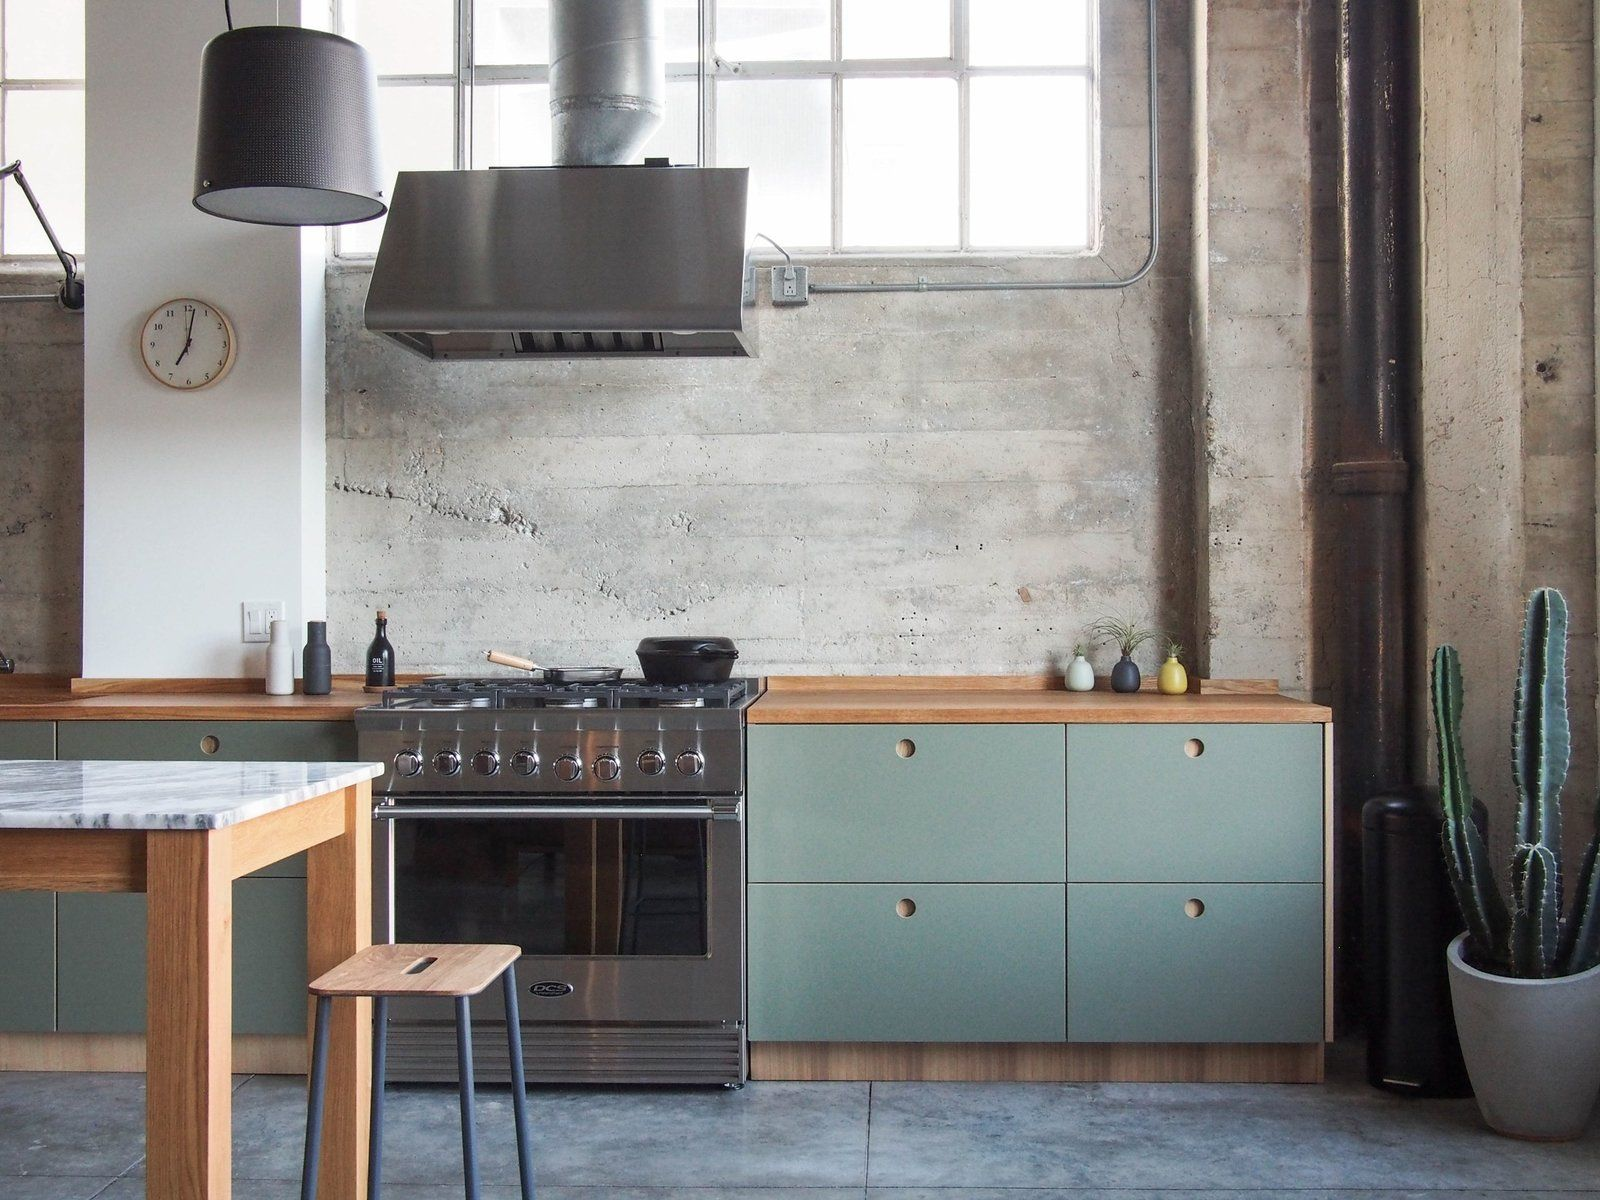 Best Photo 5 Of 9 In Modern Kitchen Upgrade Ideas From A Danish 400 x 300